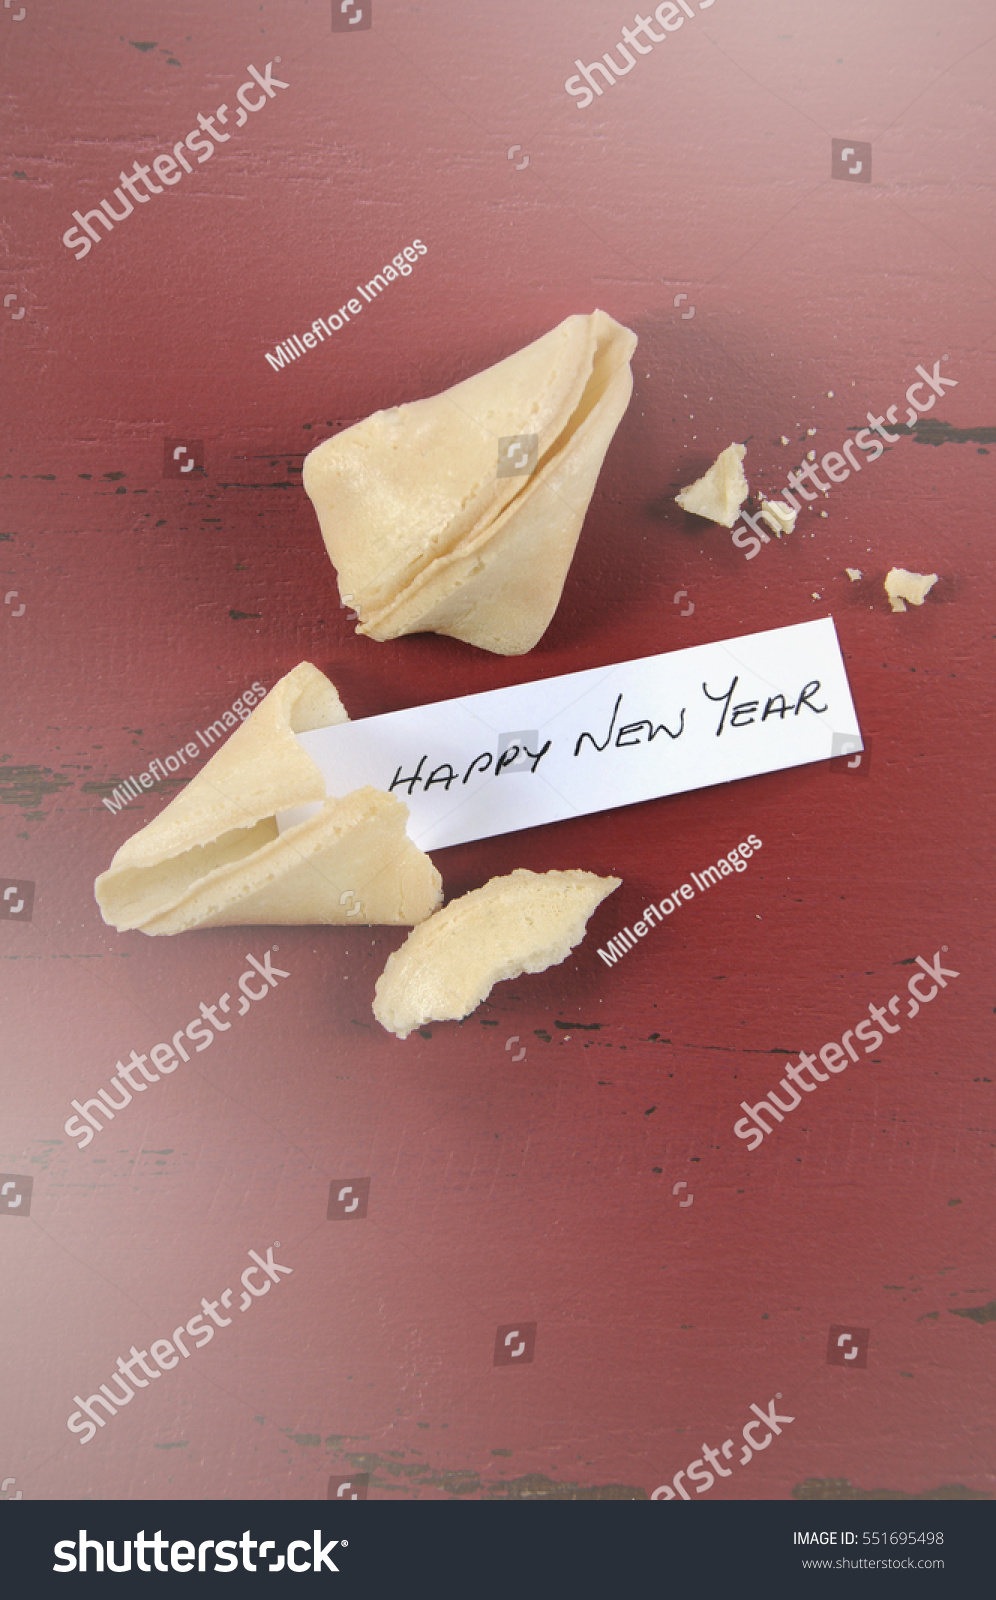 Happy New Year Message Greeting Inside Stock Photo 551695498